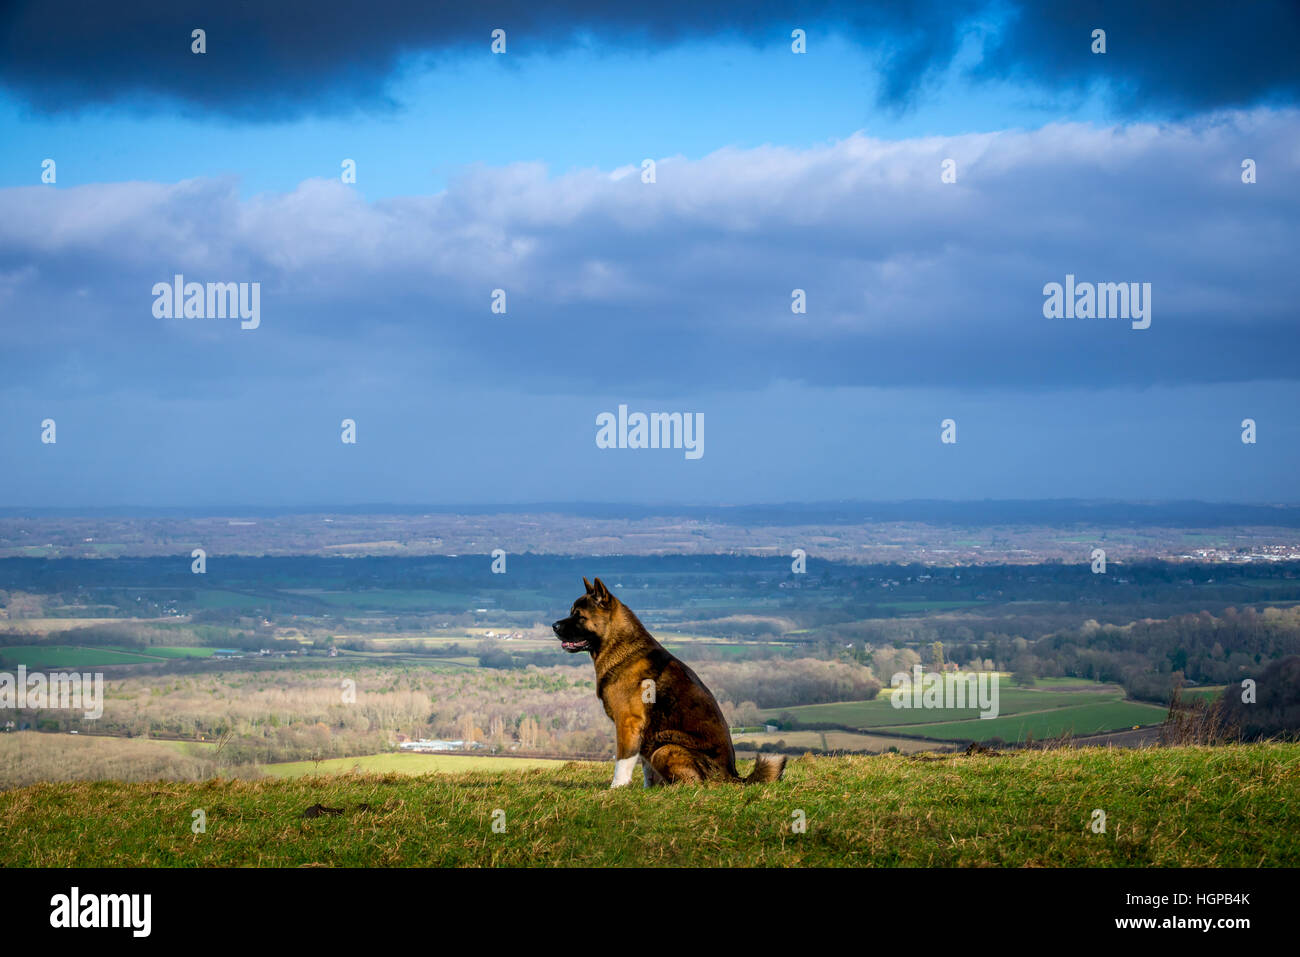 An American Akita dog in the South Downs National Park - Stock Image